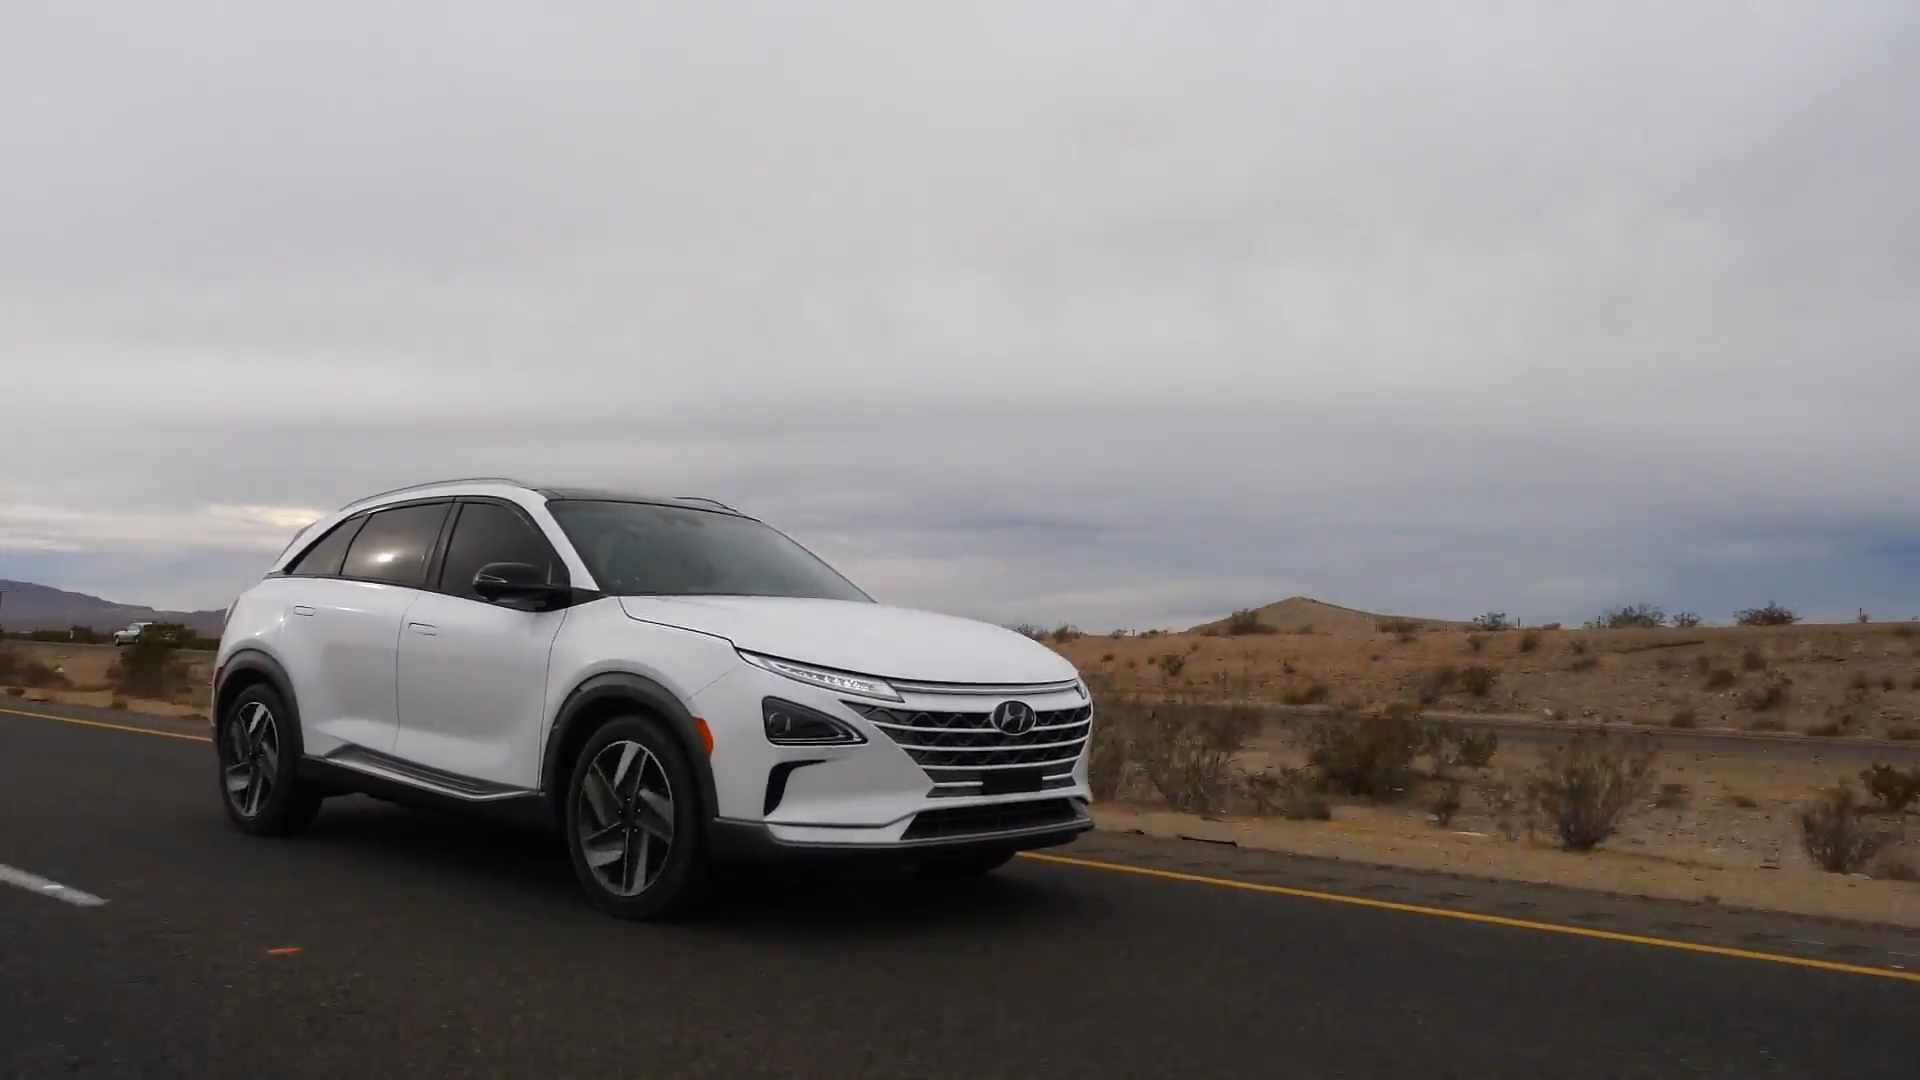 Hyundai Motor at CES 2018 Hyundai NEXO Fuel Cell EV